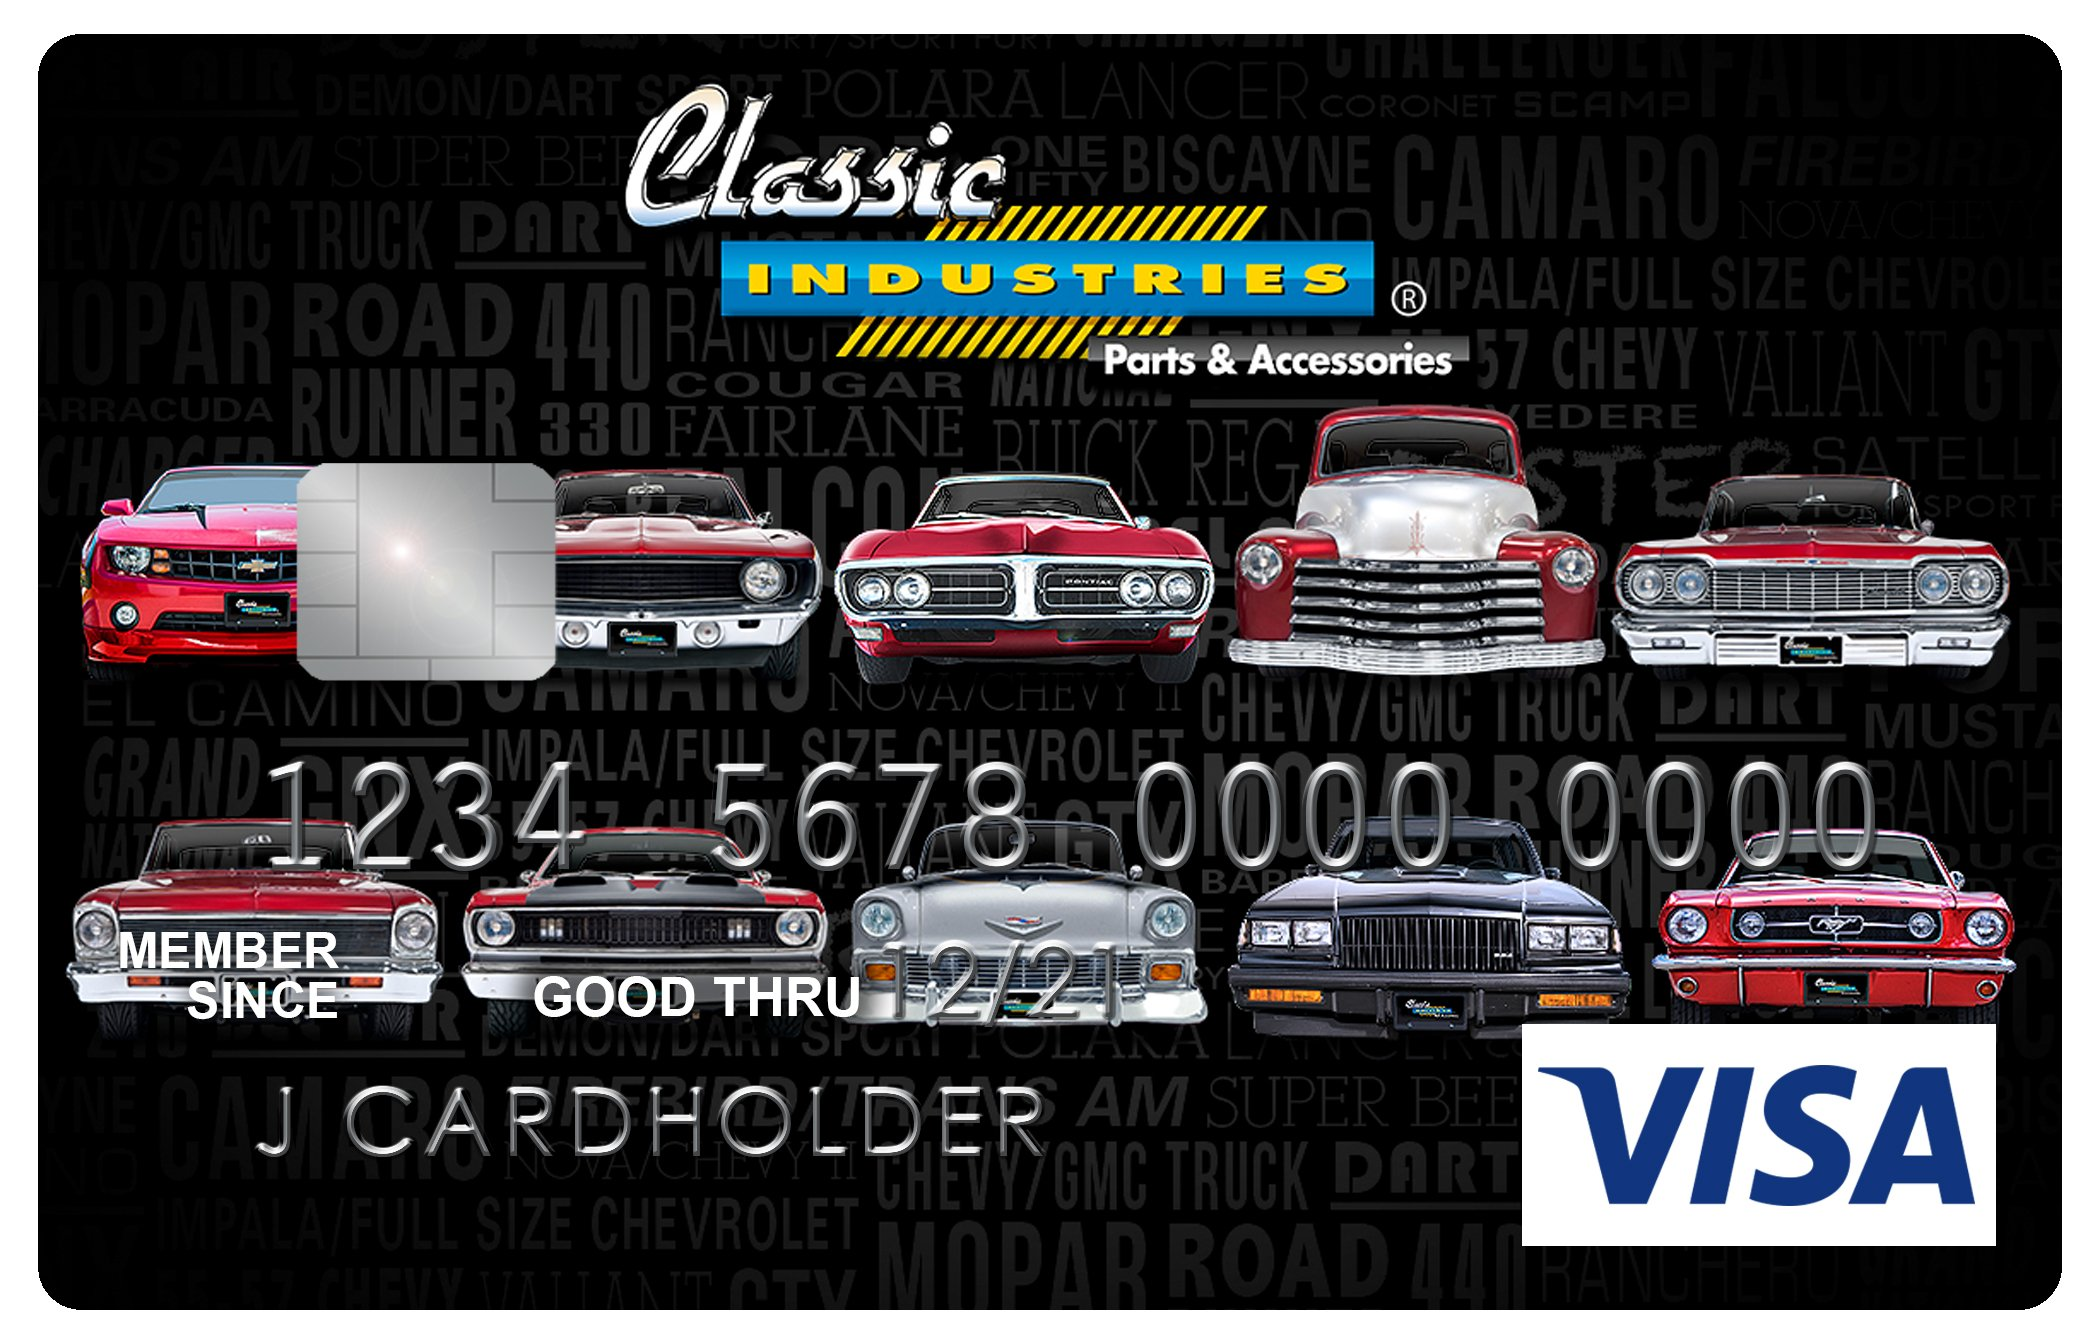 UMB-CardArt-ClassicIndustries-cars-Visa-Final